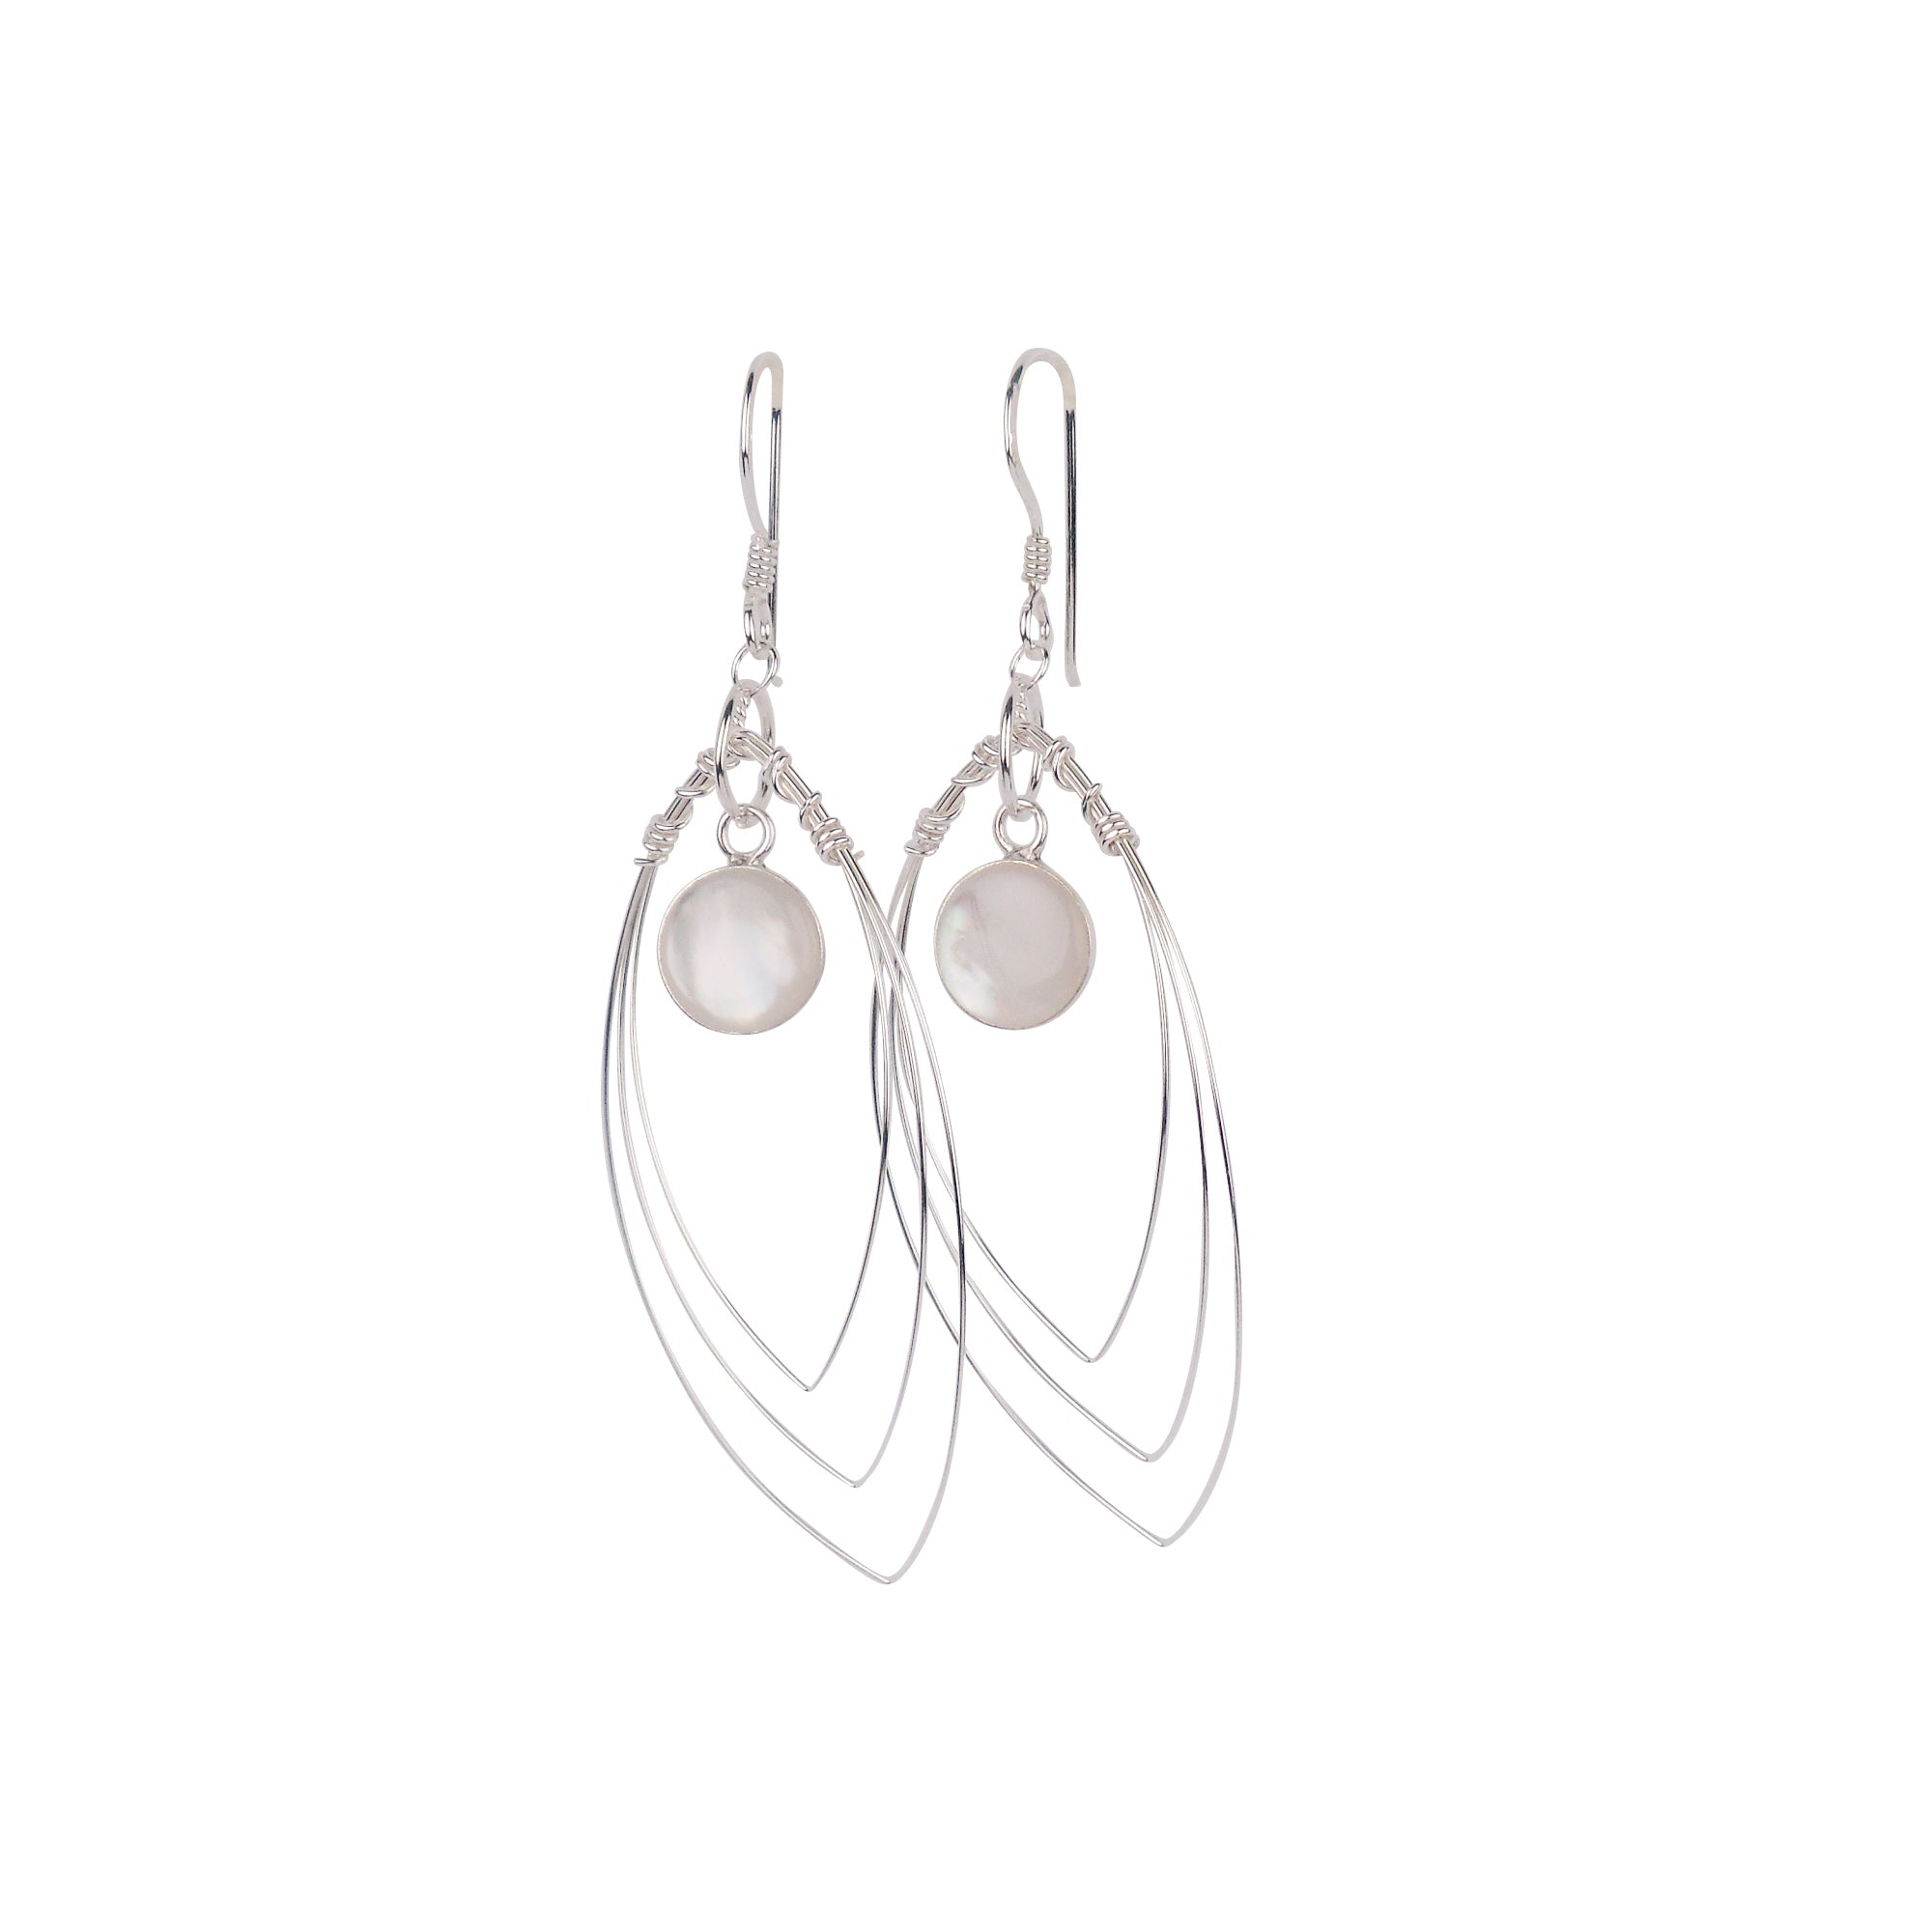 Sterling Silver Wire Earrings with Stone - Matico